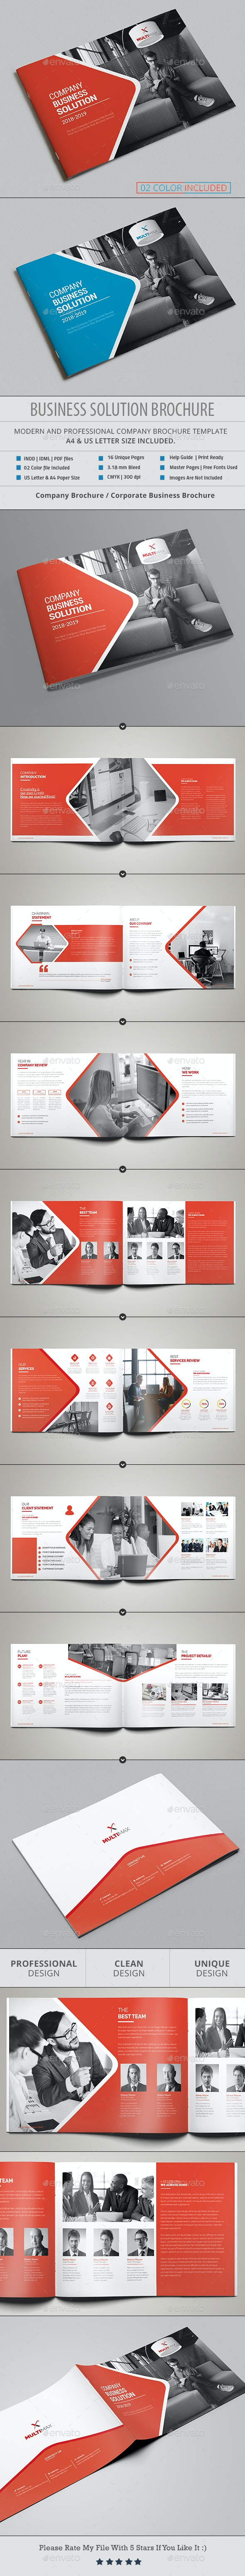 Landscape Brochure Template - Corporate Brochures